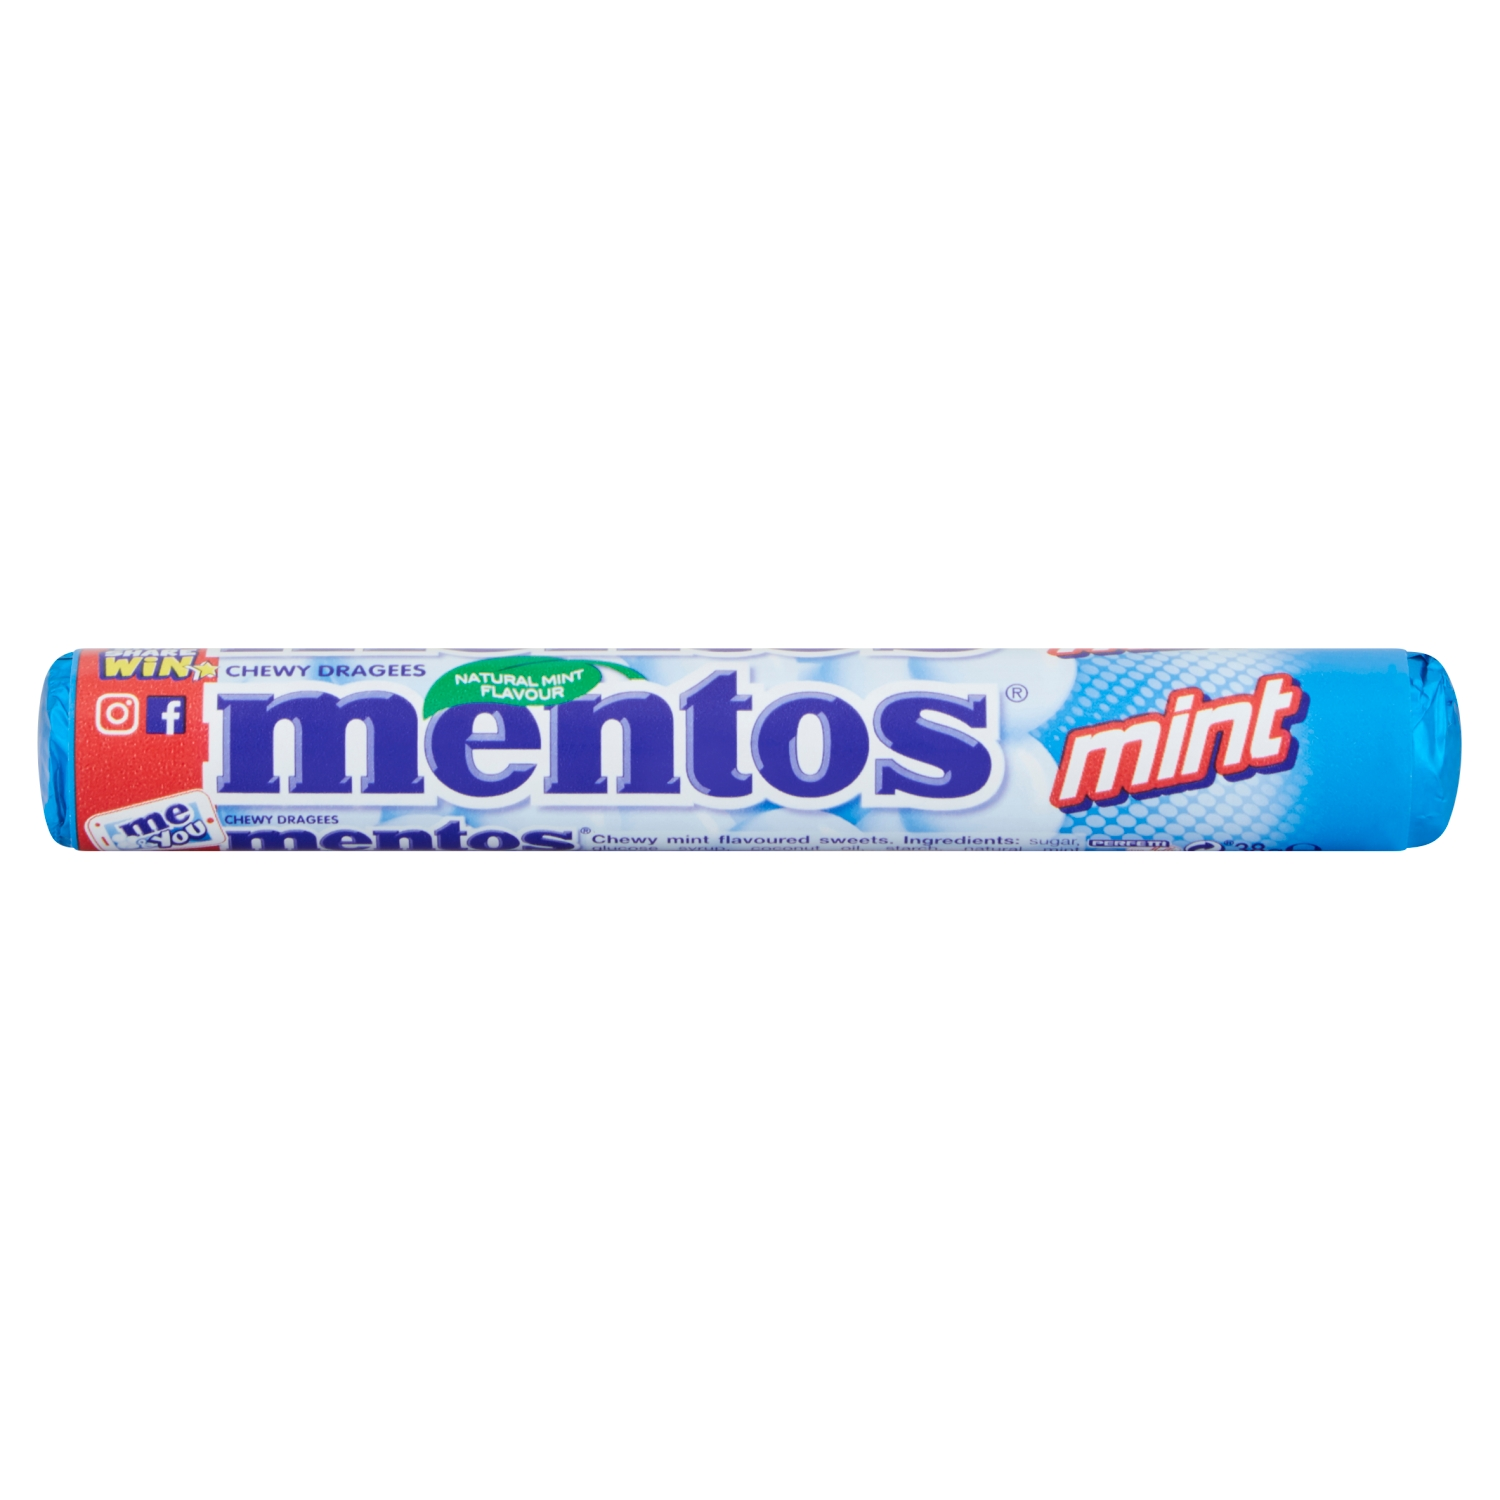 Mentos Mint Chewy Dragees 38g